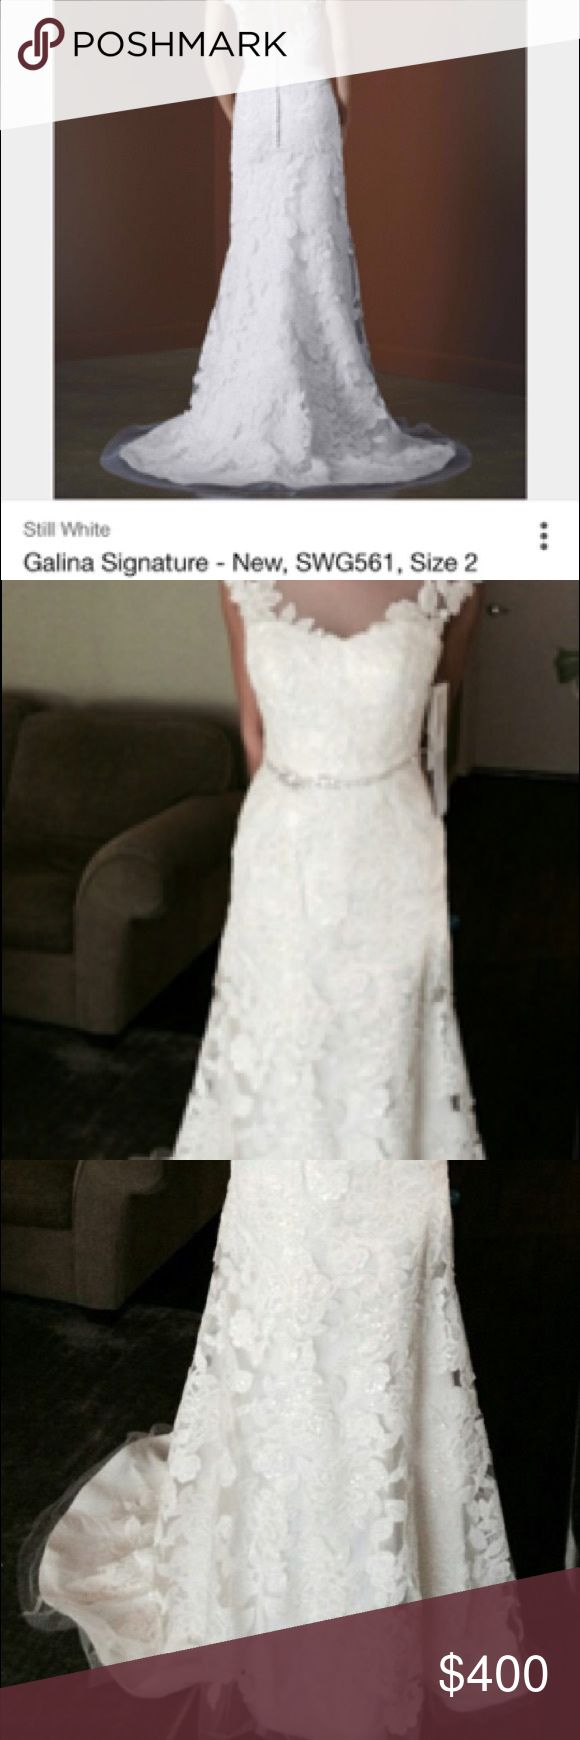 Galina Signature Wedding Gown SWG561 Size 6 wedding gown, Ivory Lace mermaid fit gown. Very elegant and classy. Galina Signature Dresses Wedding